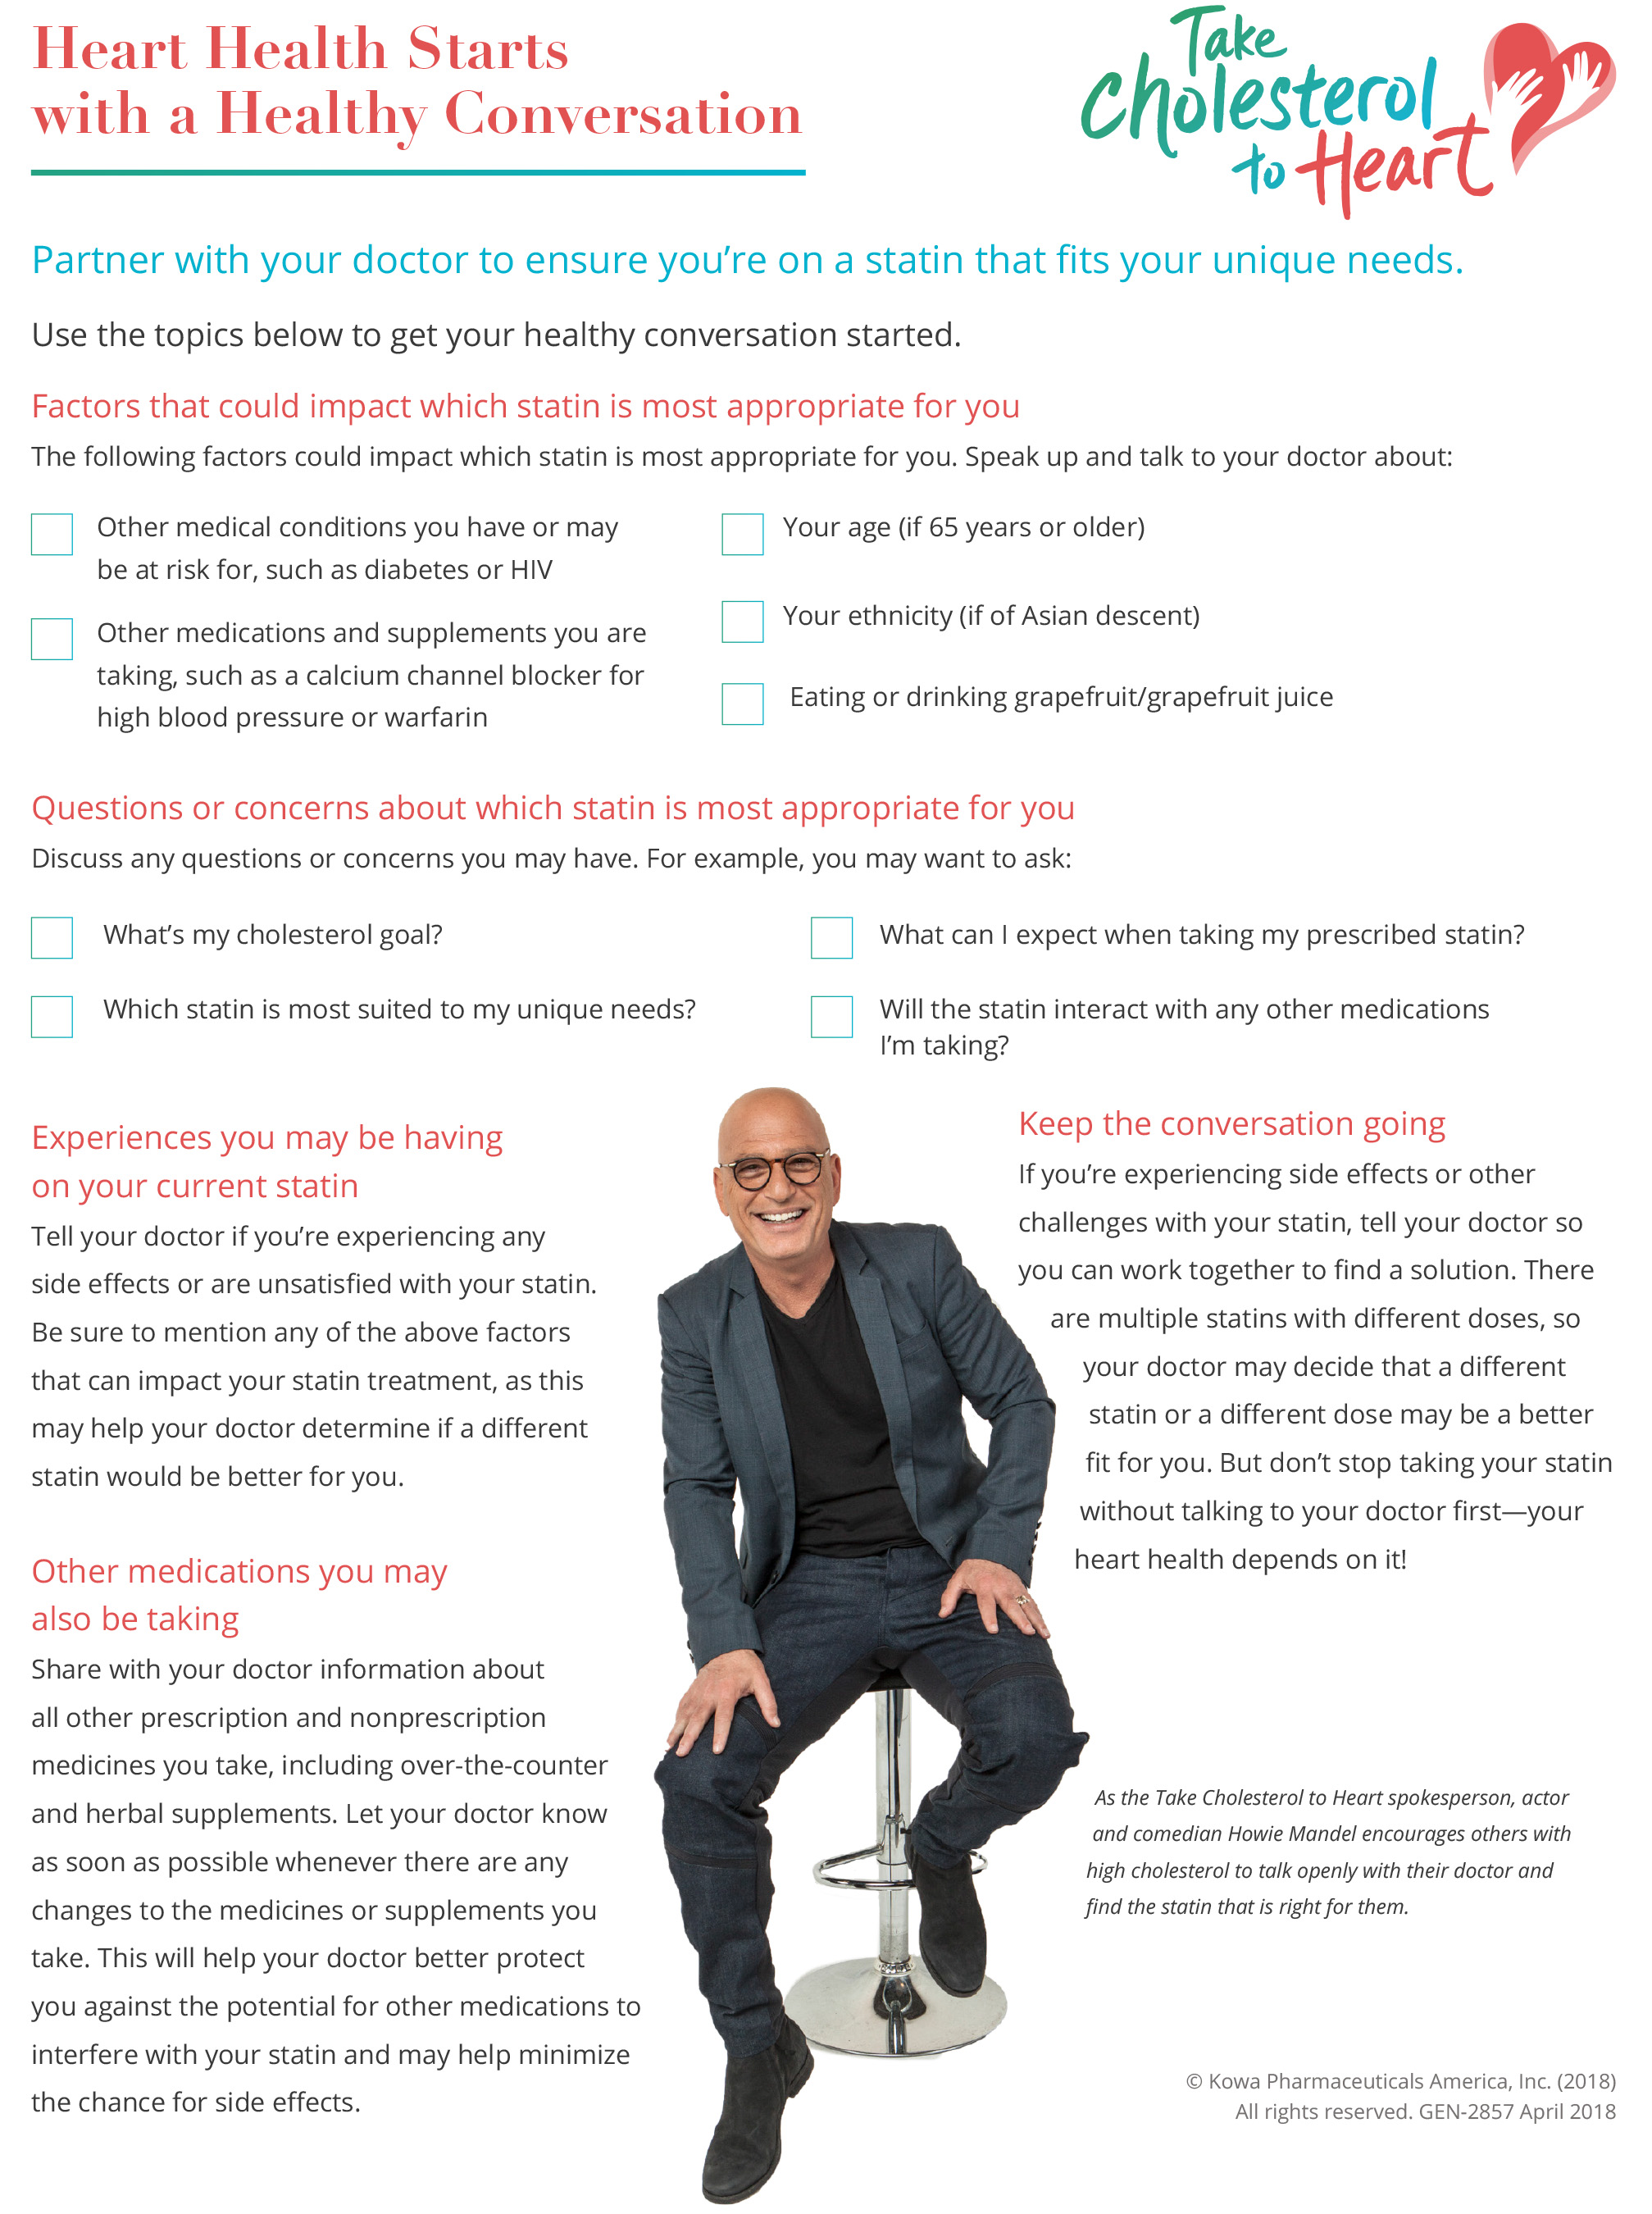 This doctor discussion guide will help facilitate the conversation with your doctor so you can make the most of your doctor's appointment and ensure you're on a statin that fits your unique needs.